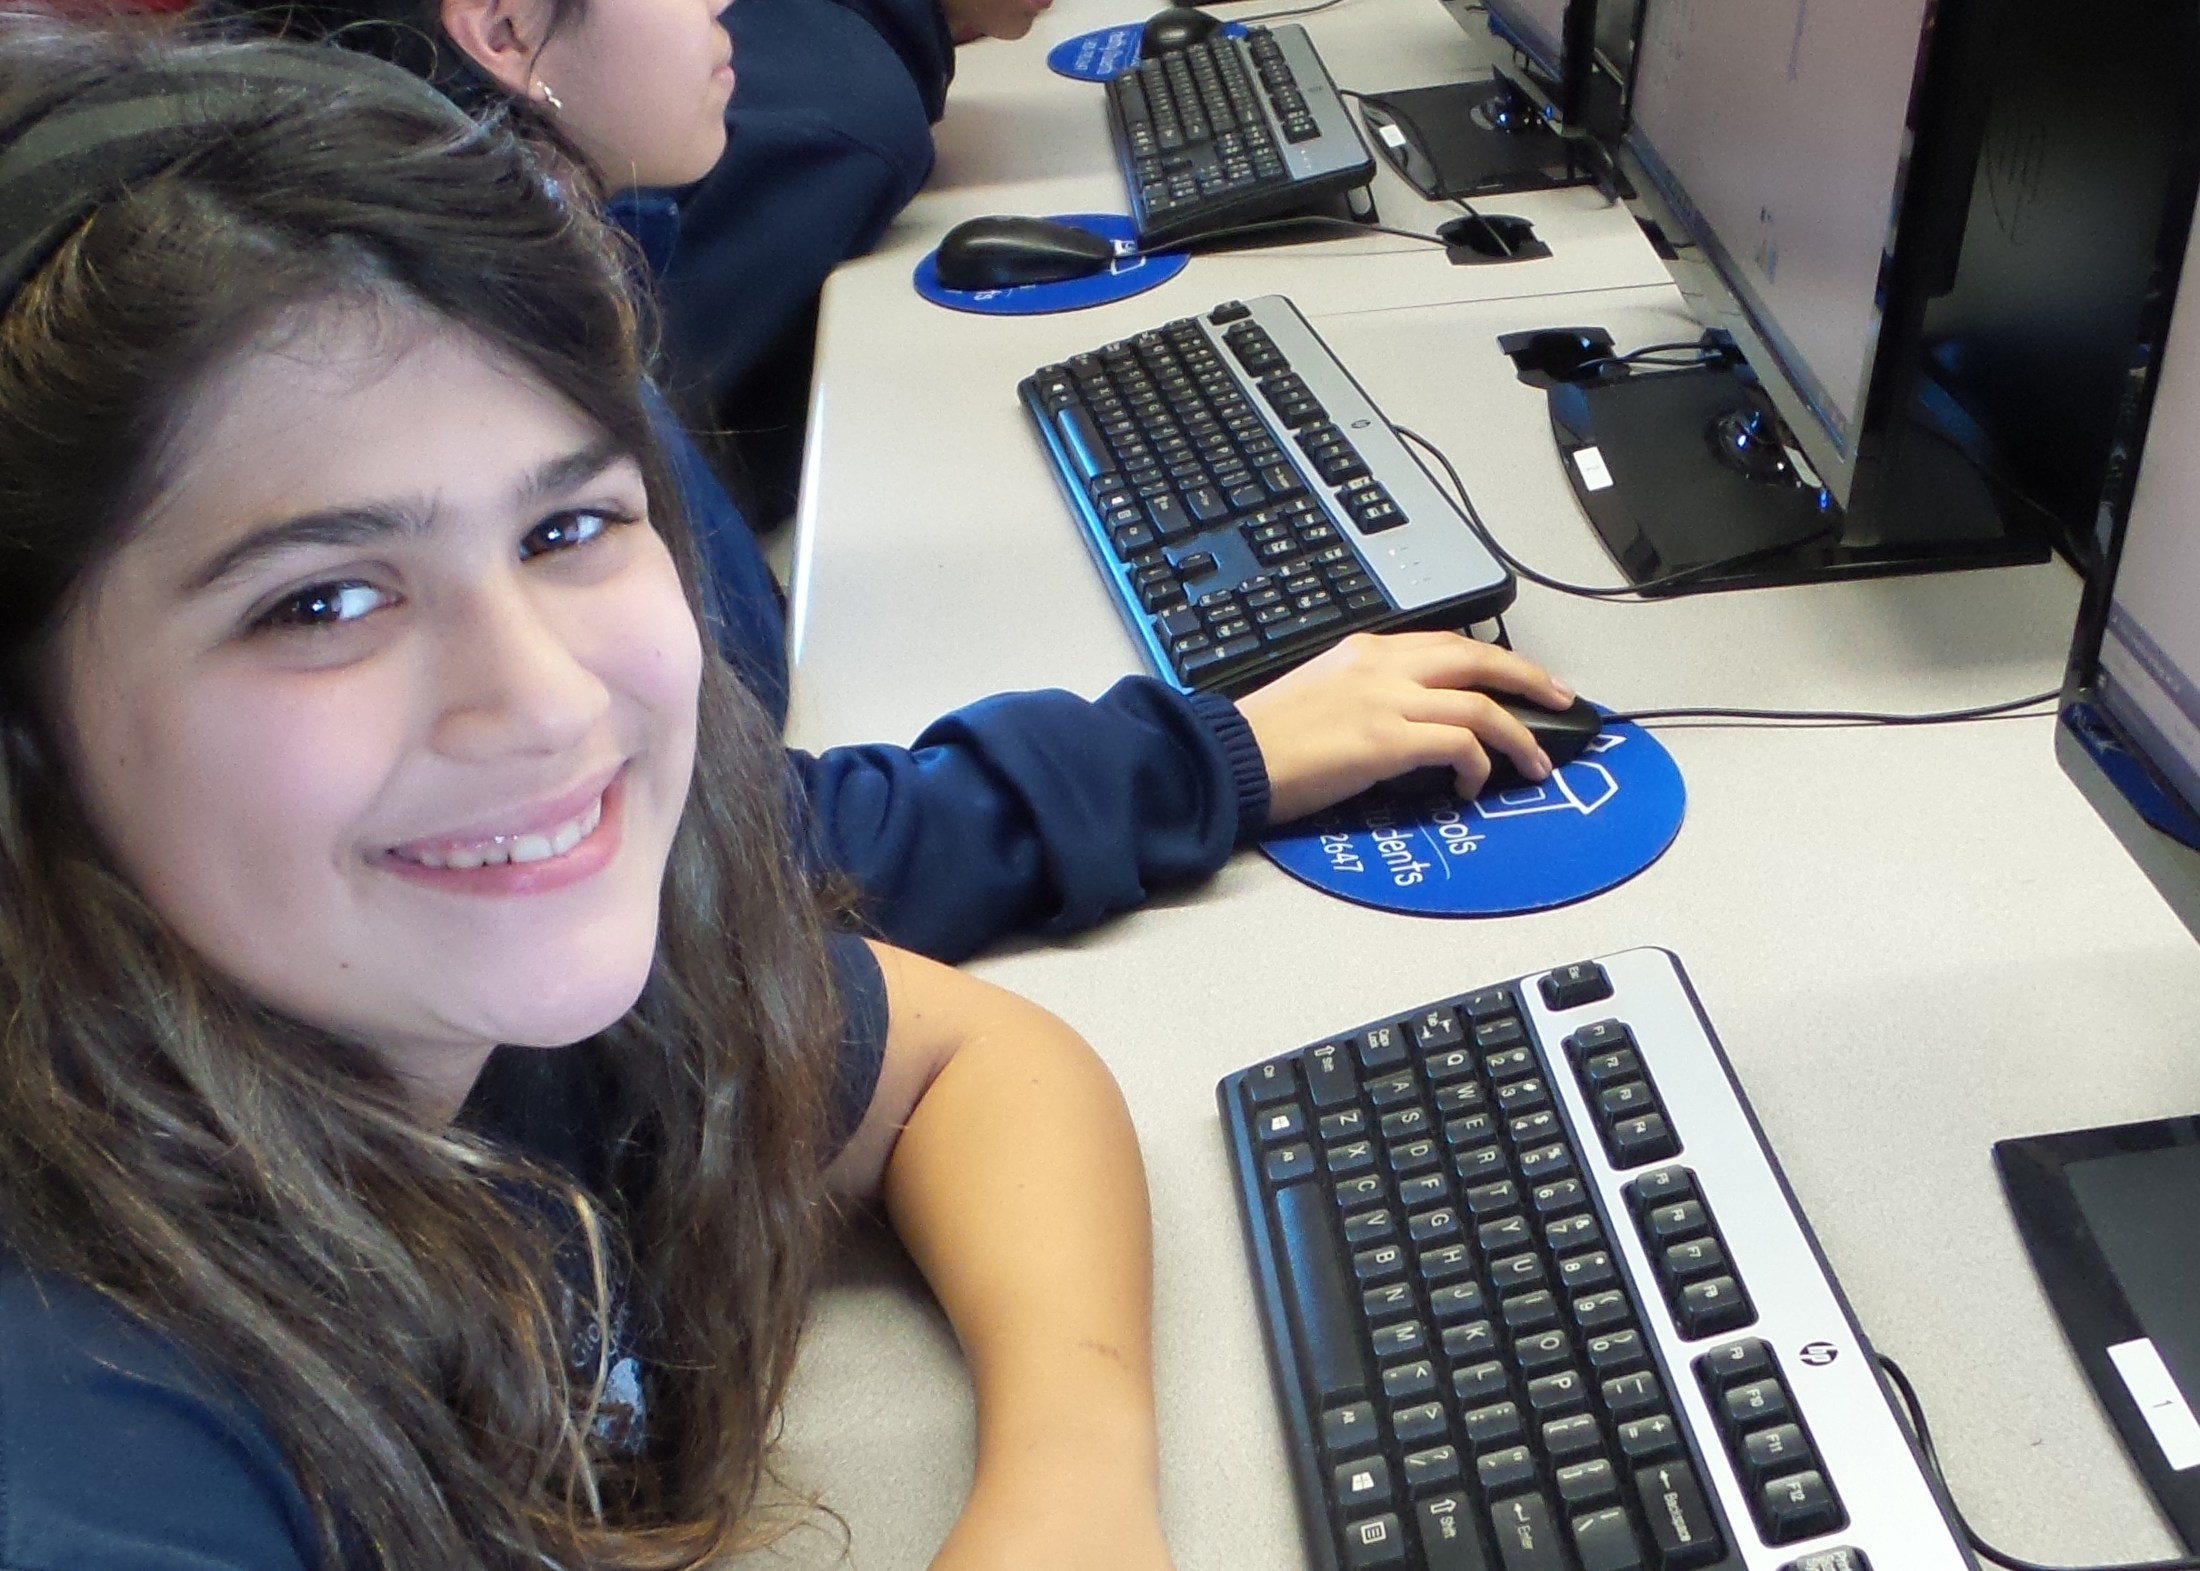 Student on computer smiling.